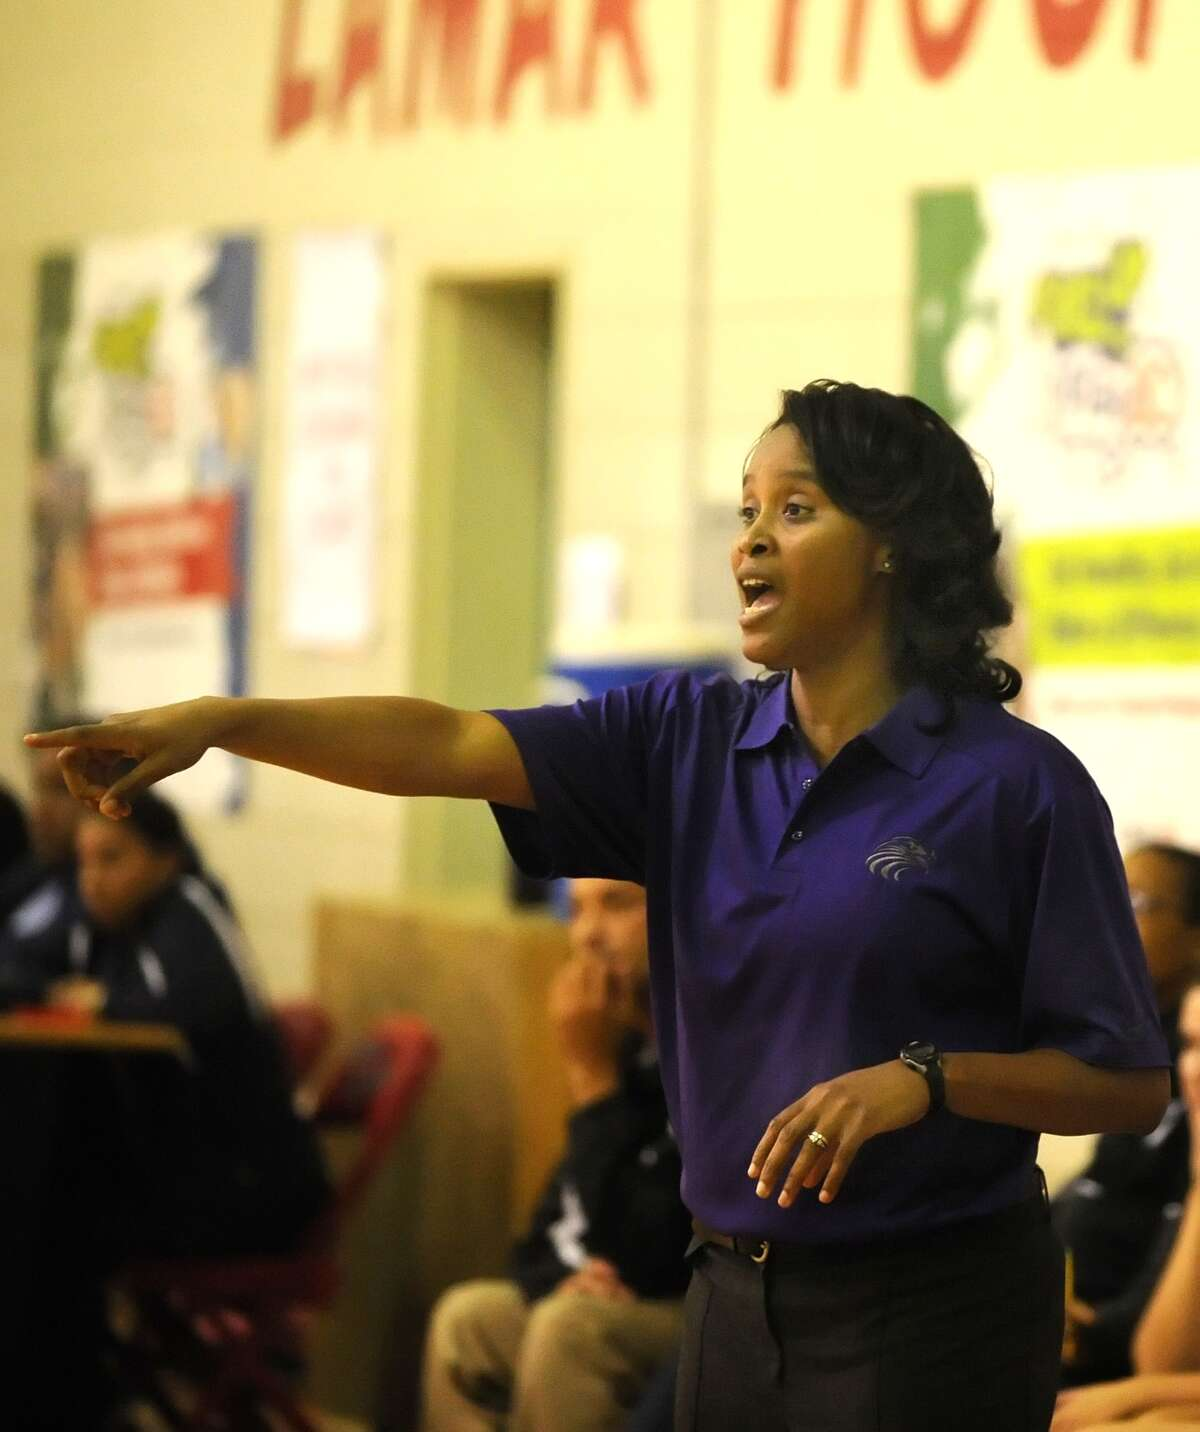 Kinkaid girls basketball team defeated Lamar's girls team, 81-47, at Lamar High School, 11-5-2013. Kinkaid's coach Stacey Marshall yells instructions to the team.